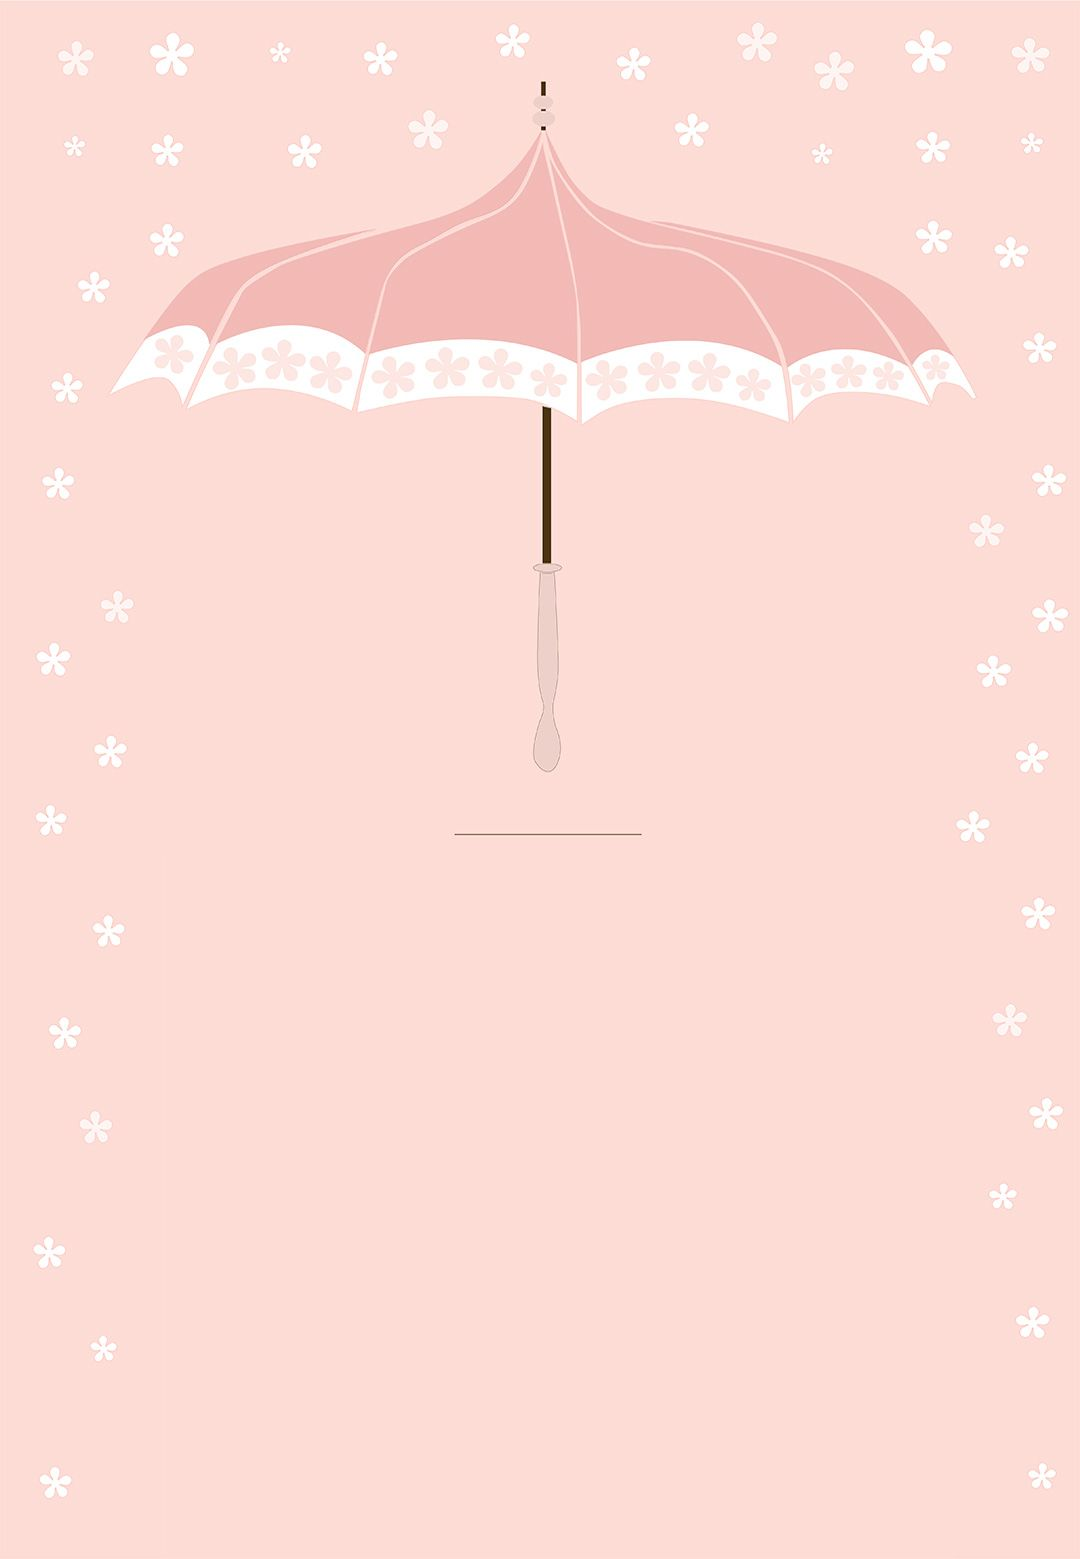 Floral Umbrella Free Printable Baby Shower Invitation Template